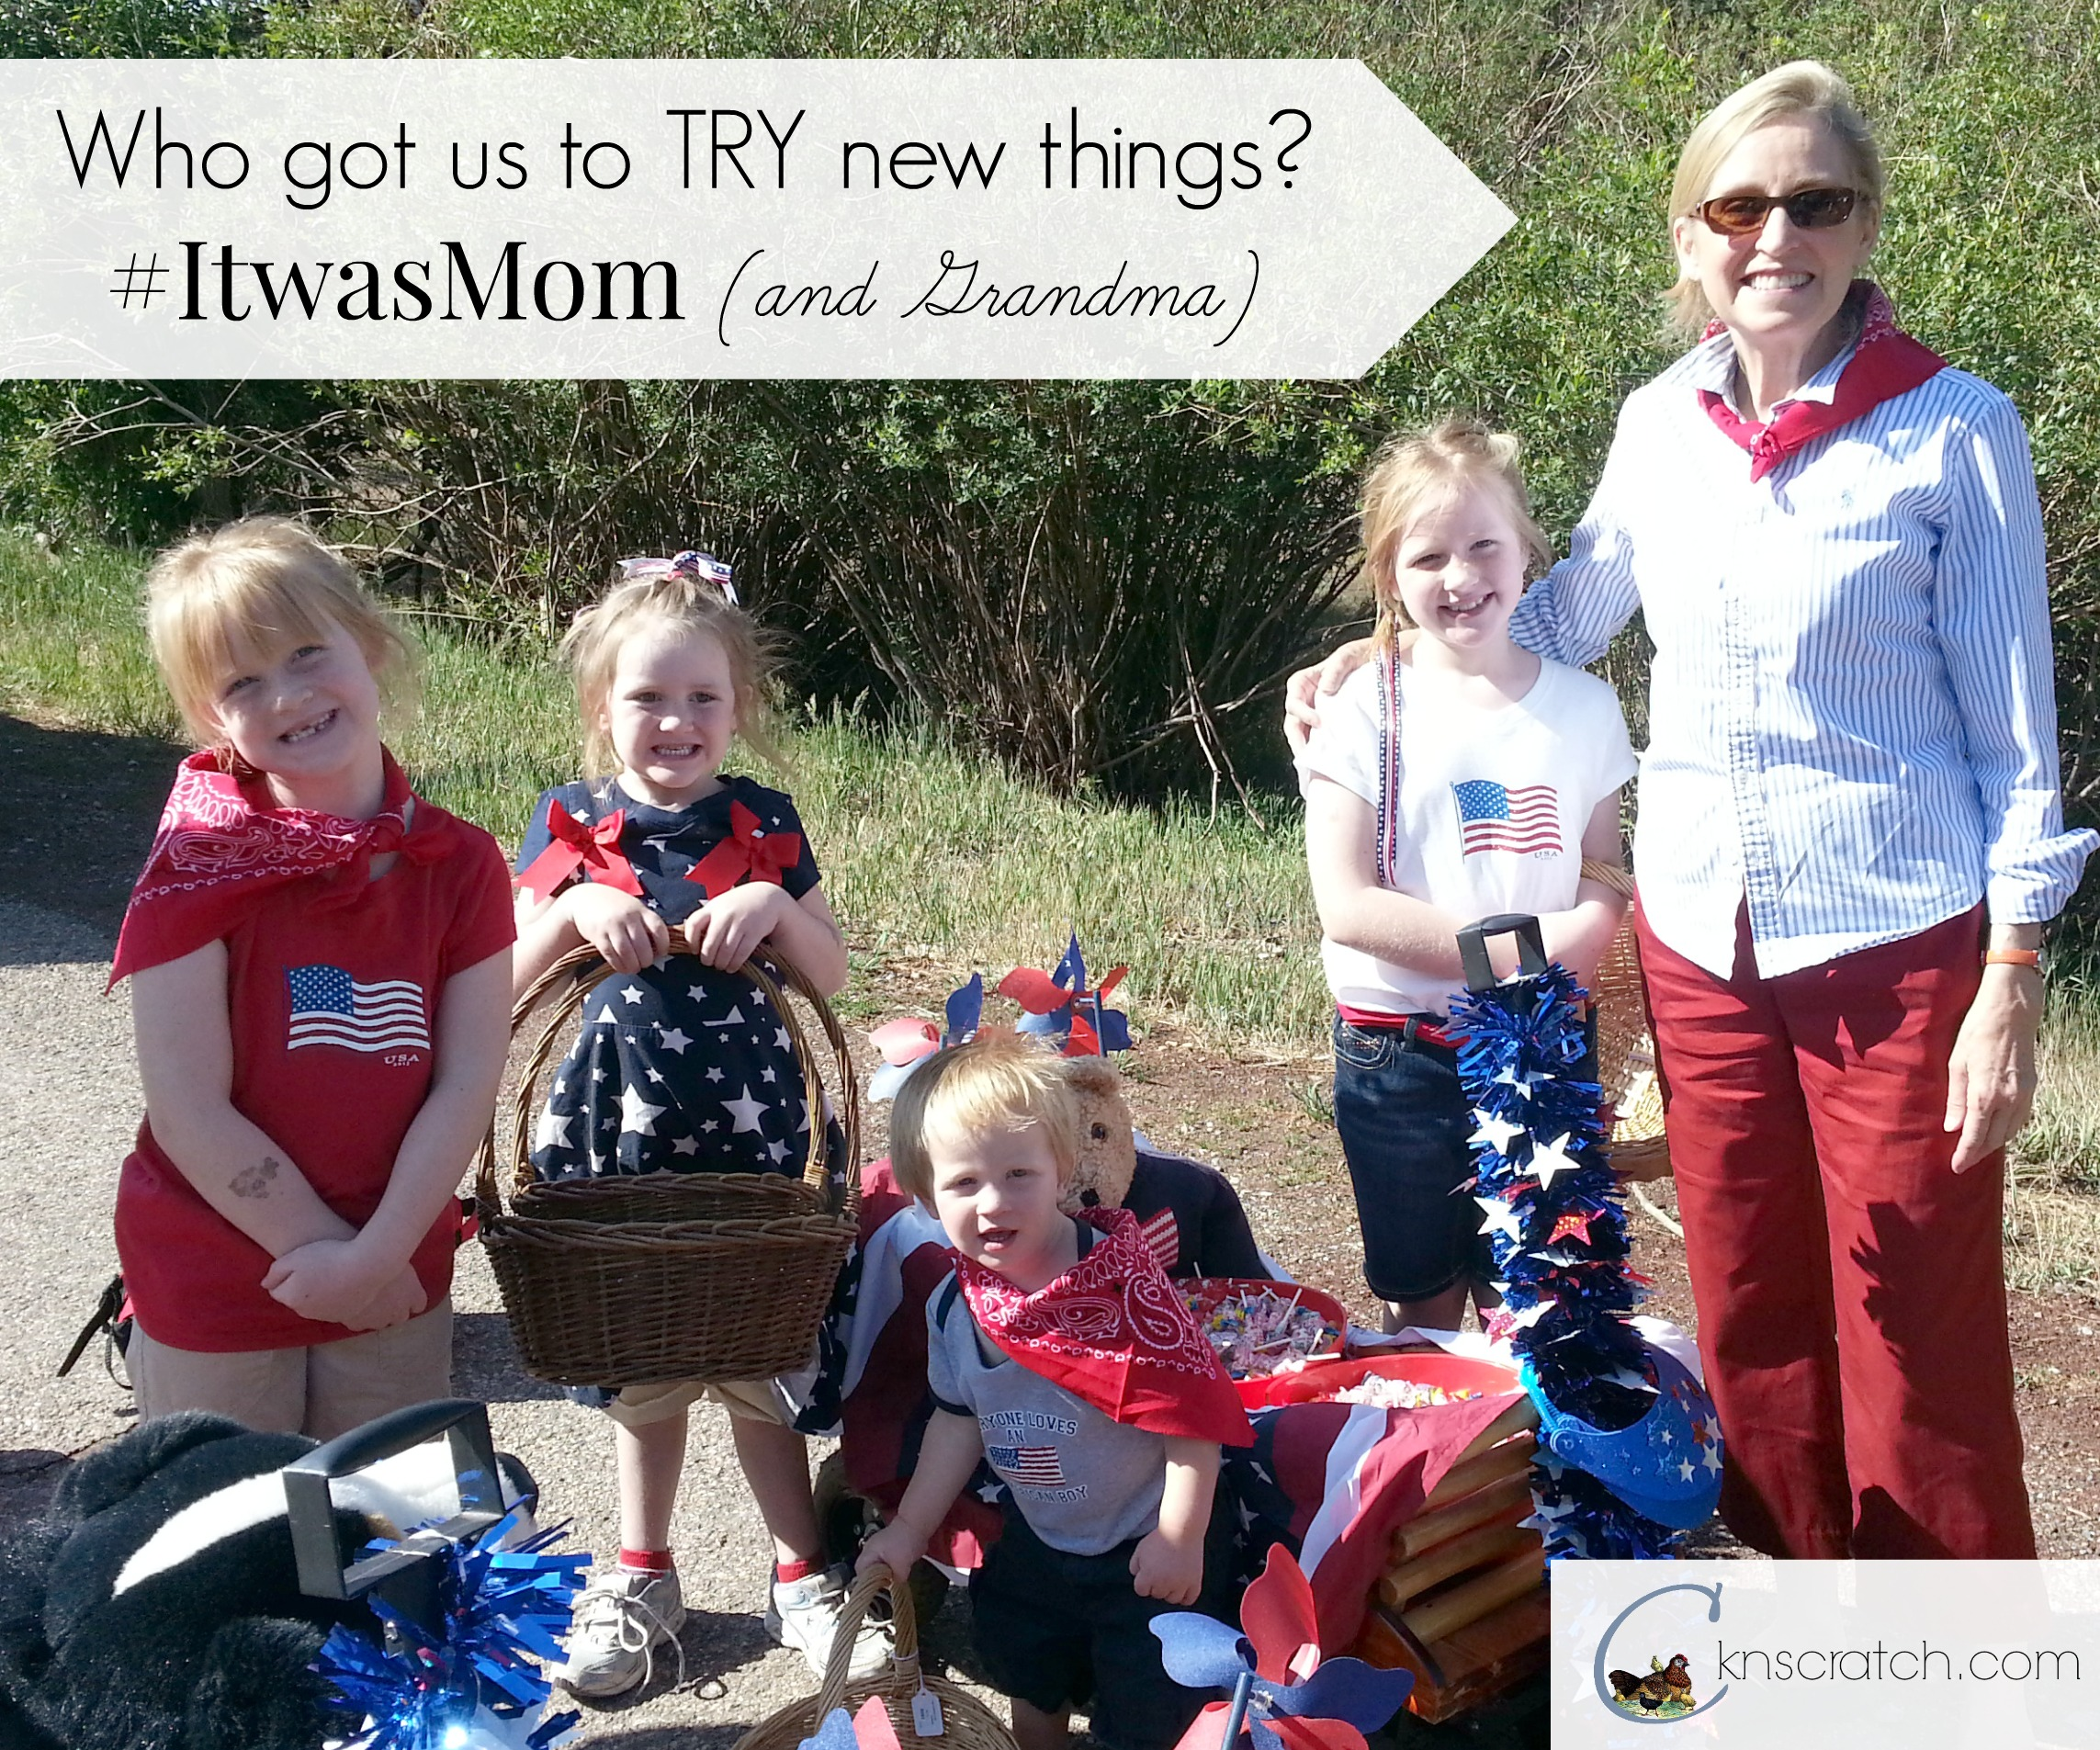 #ItwasMom who encouraged me to TRY new things.